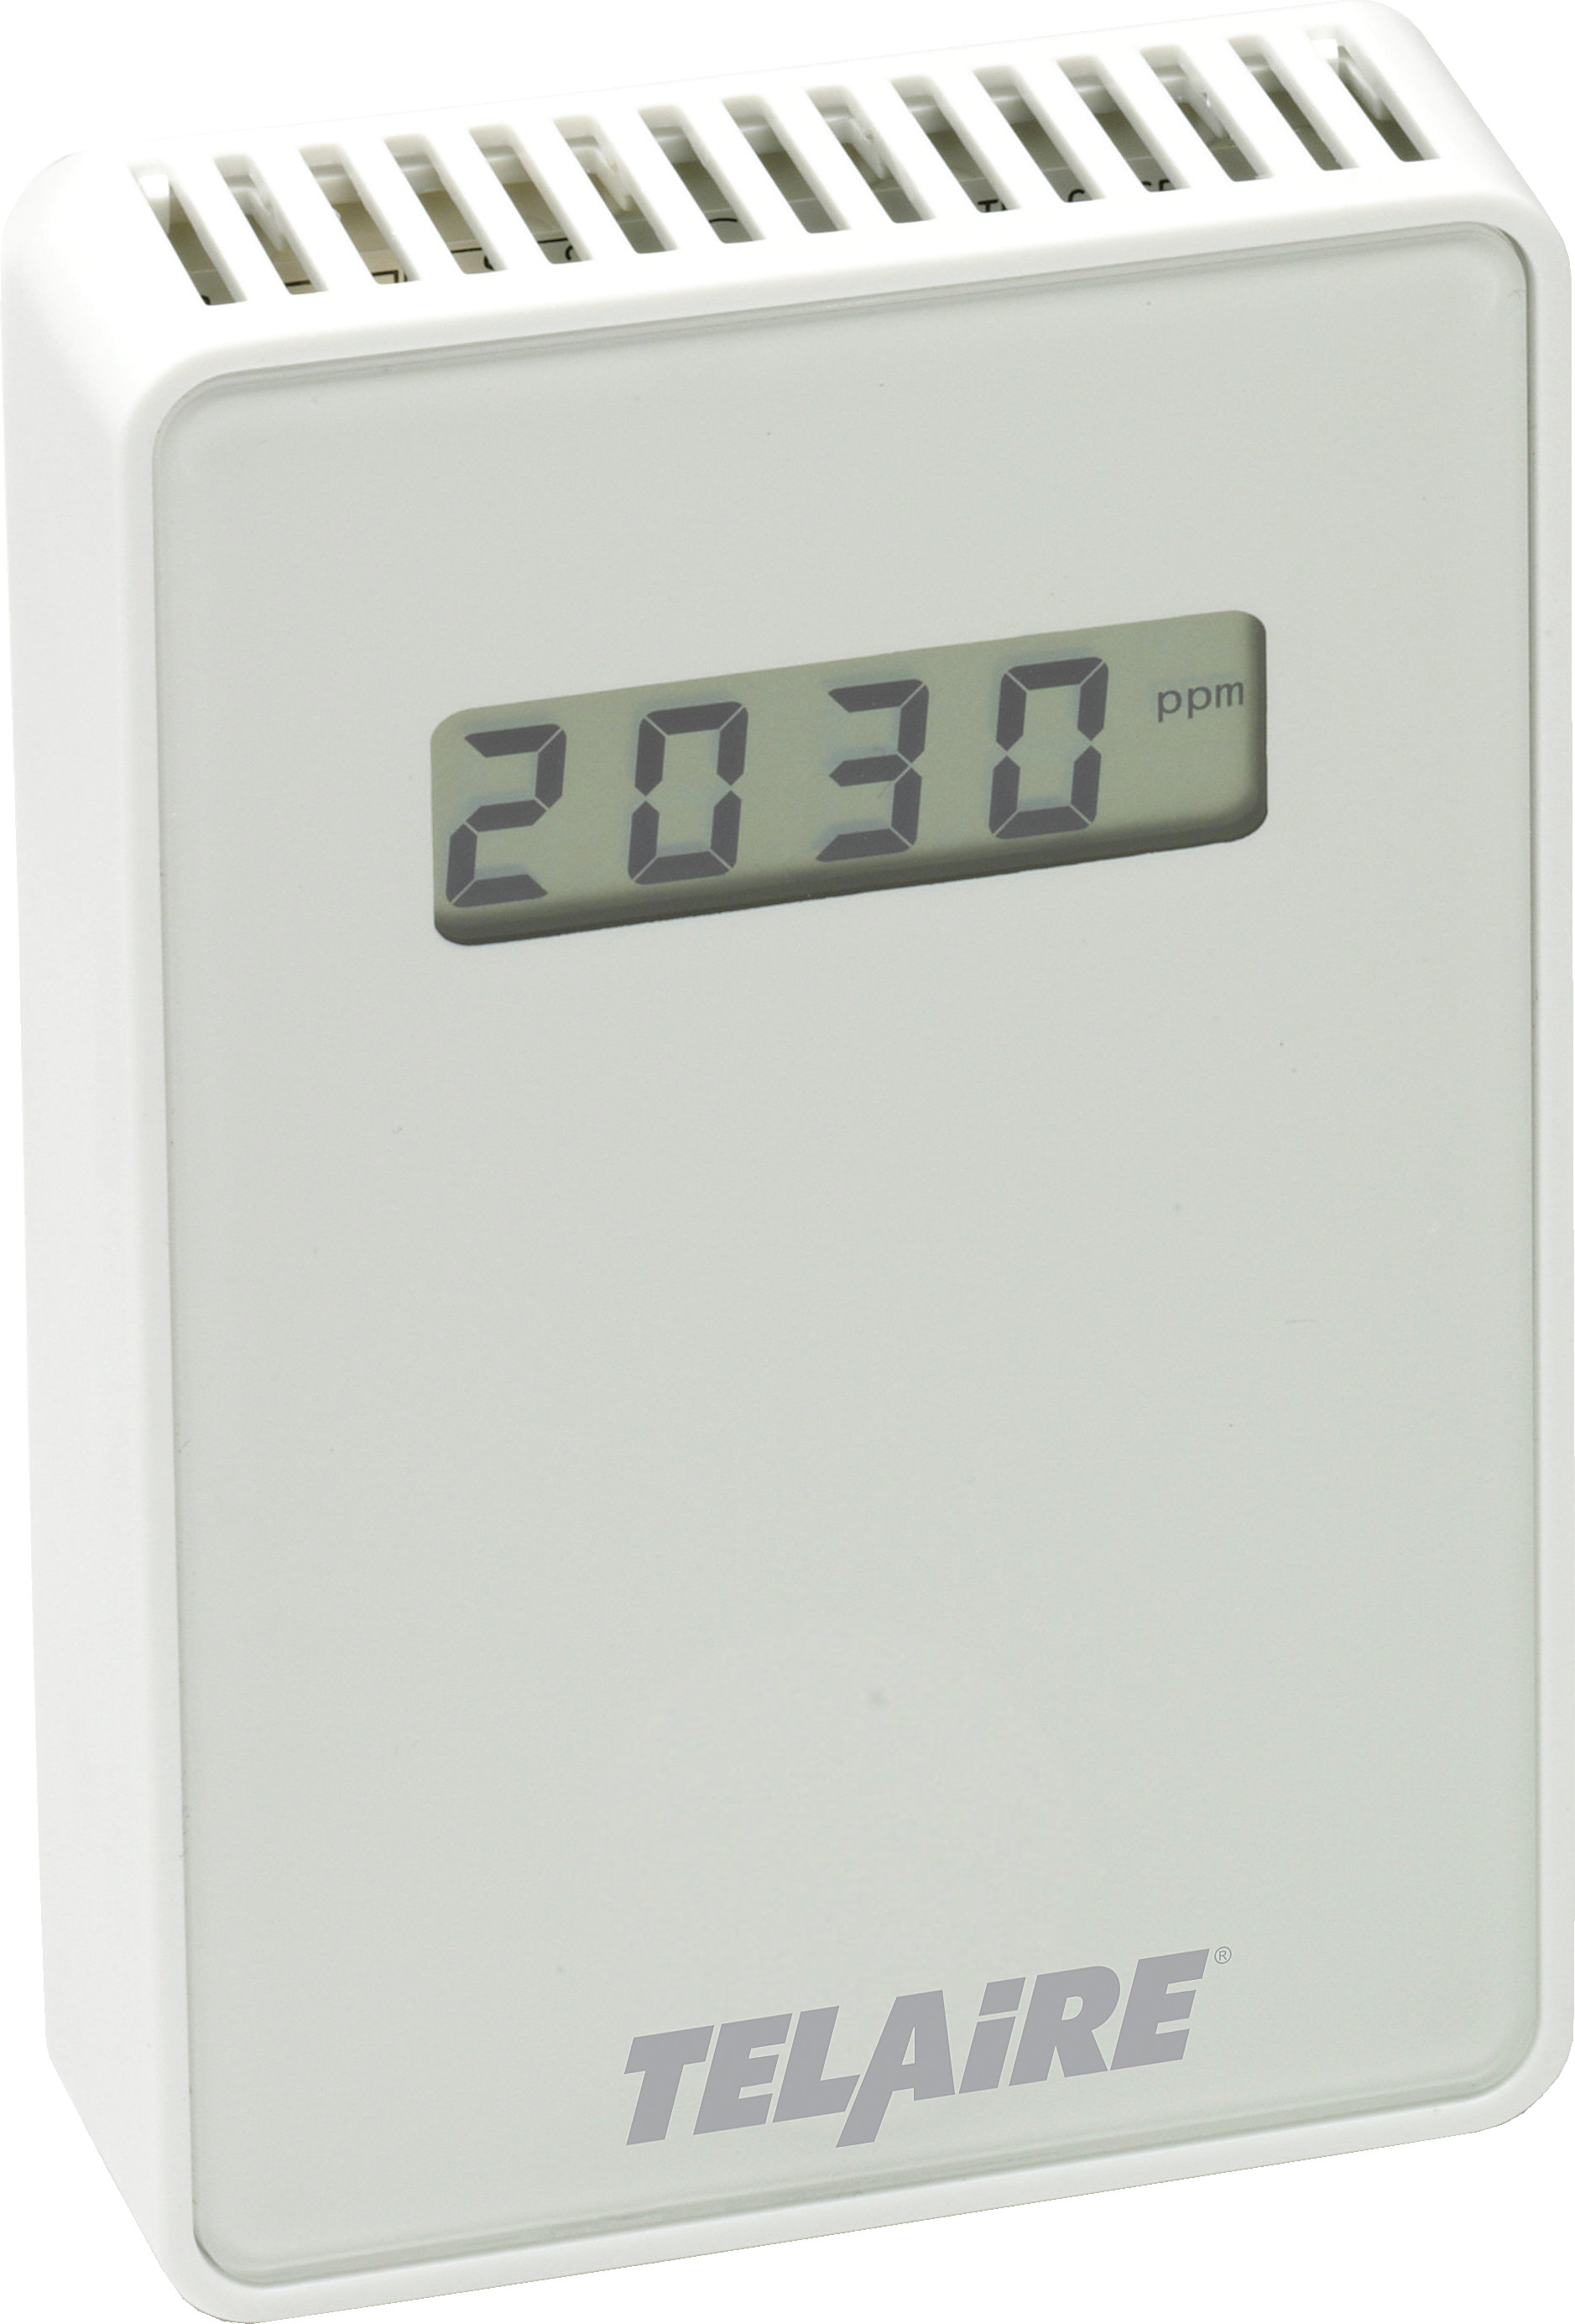 T8100-D - Telaire CO2 Wall Mount Sensor Lcd Display White - Telaire No Relay